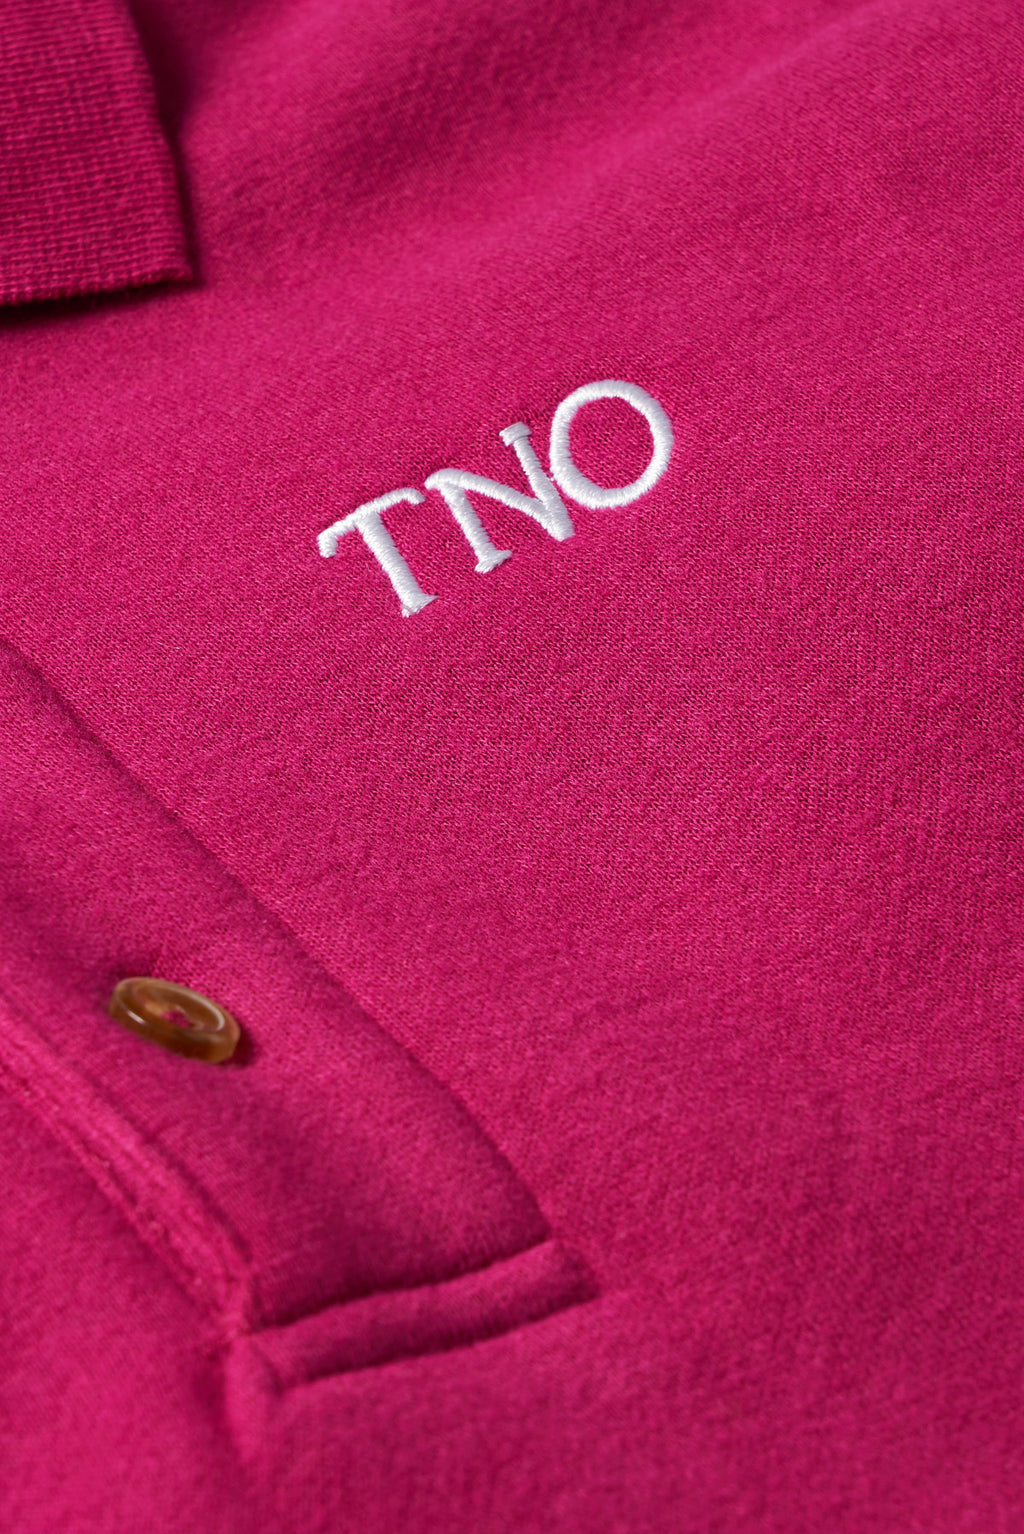 TNO BARMAN Sweater | Pink